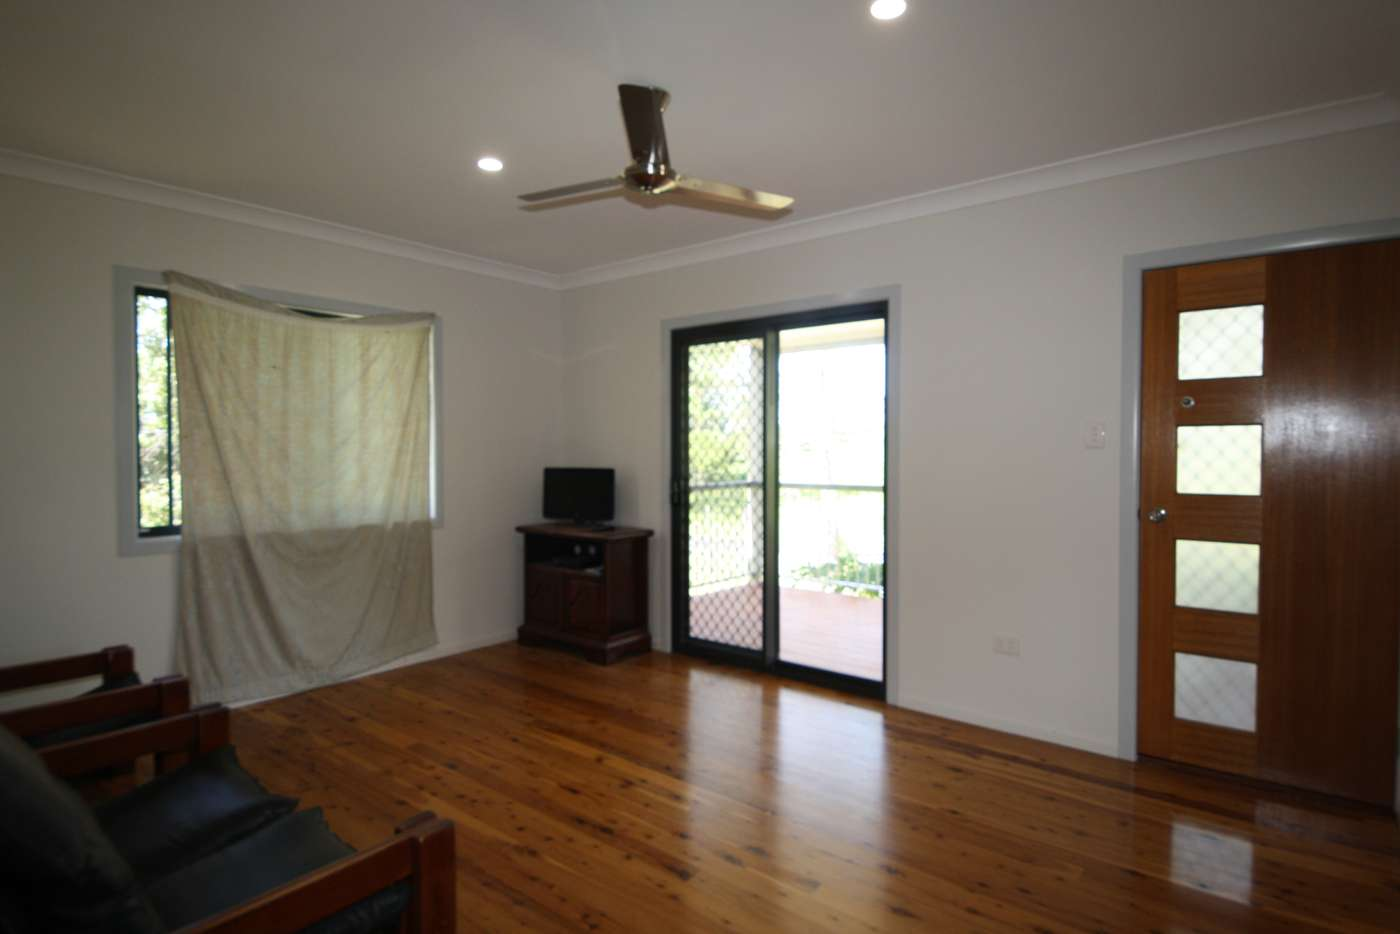 Sixth view of Homely house listing, 1455 John Clifford Way, Lowmead QLD 4676